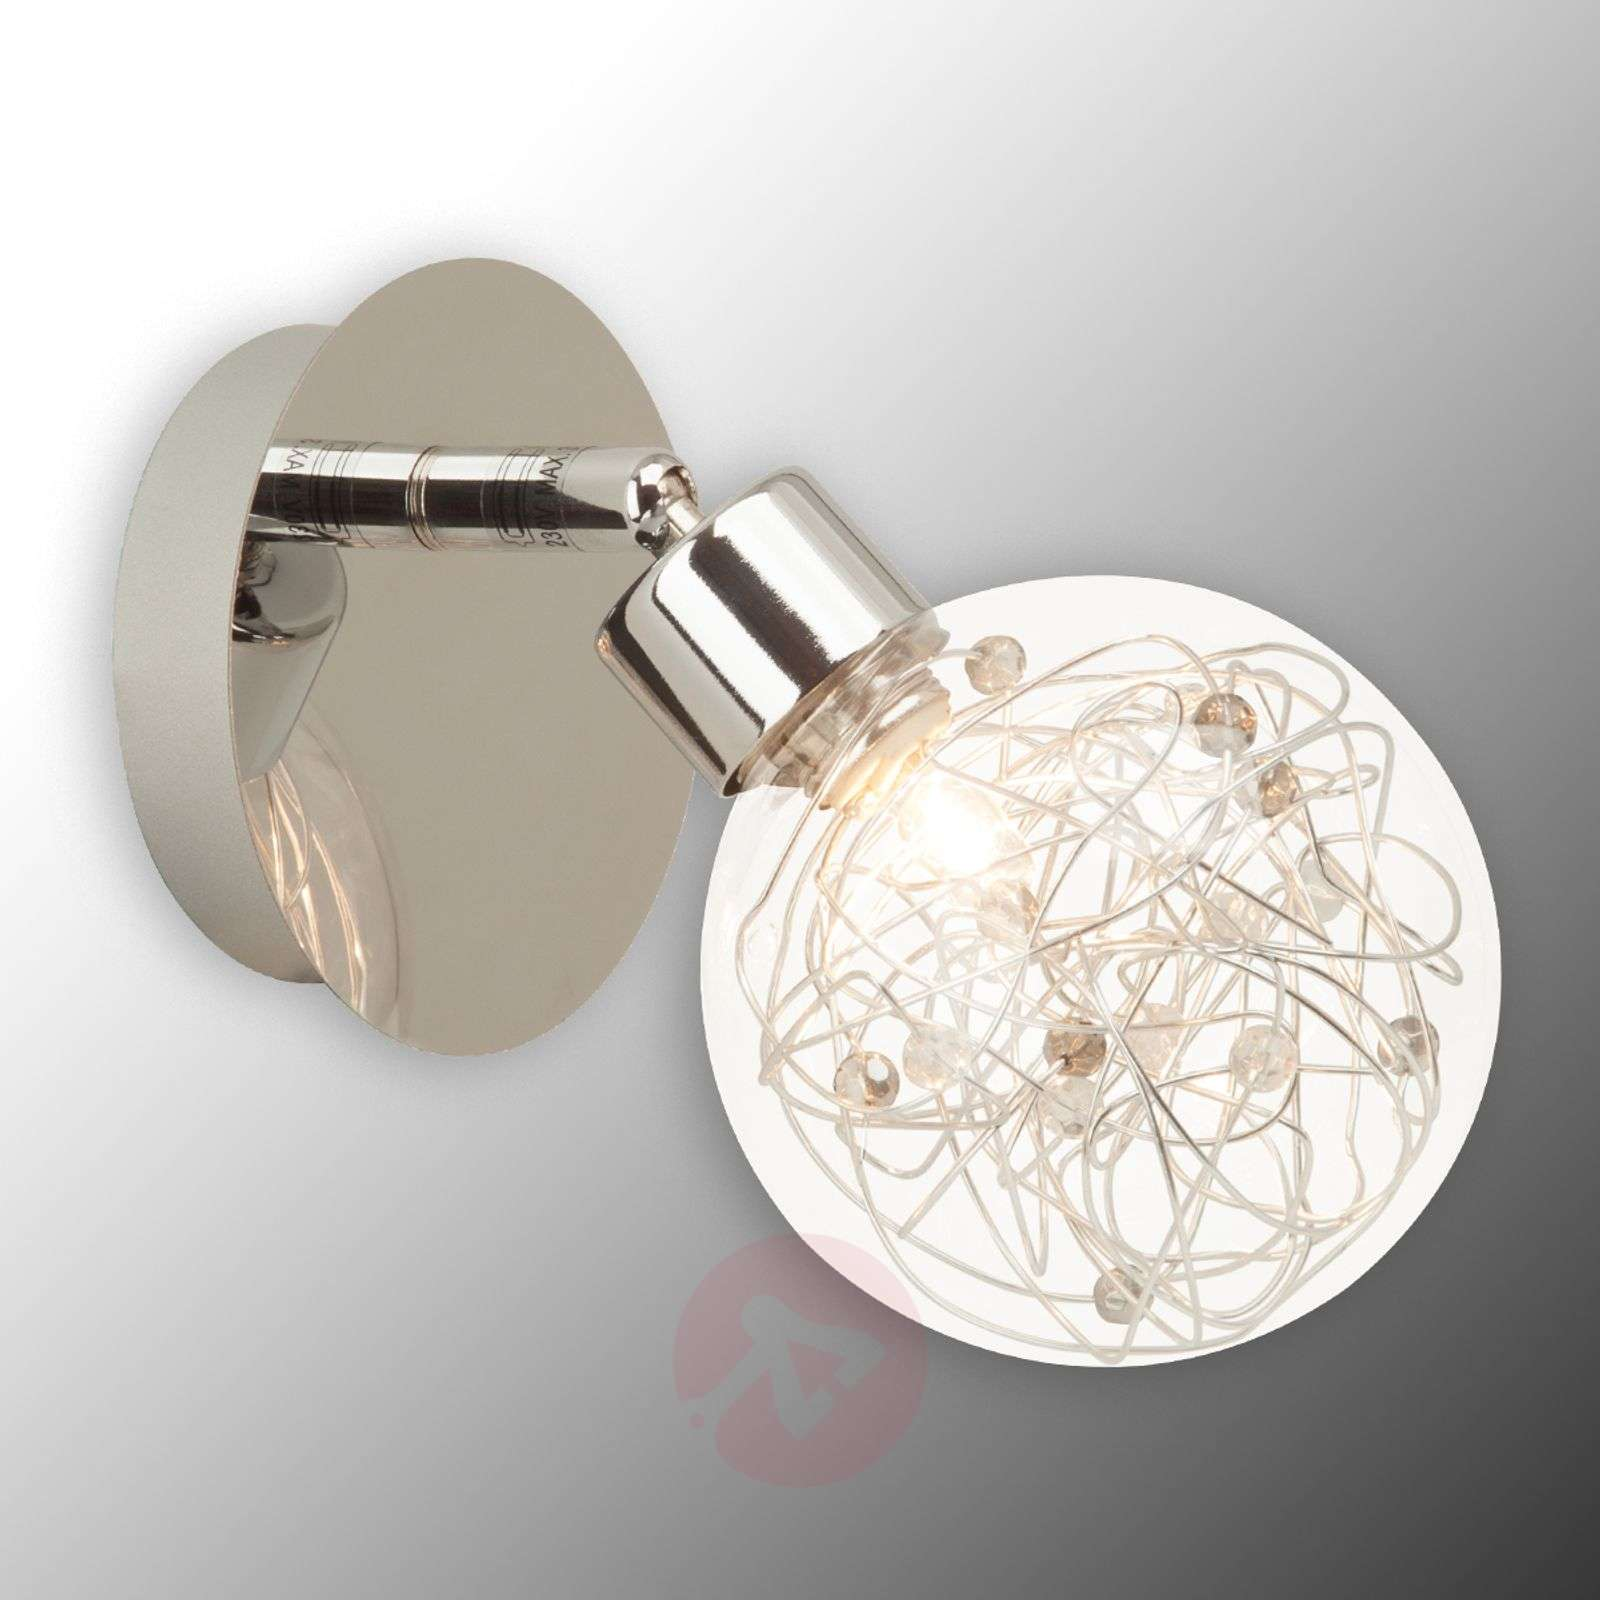 Effective wall light Joya-1509044-01